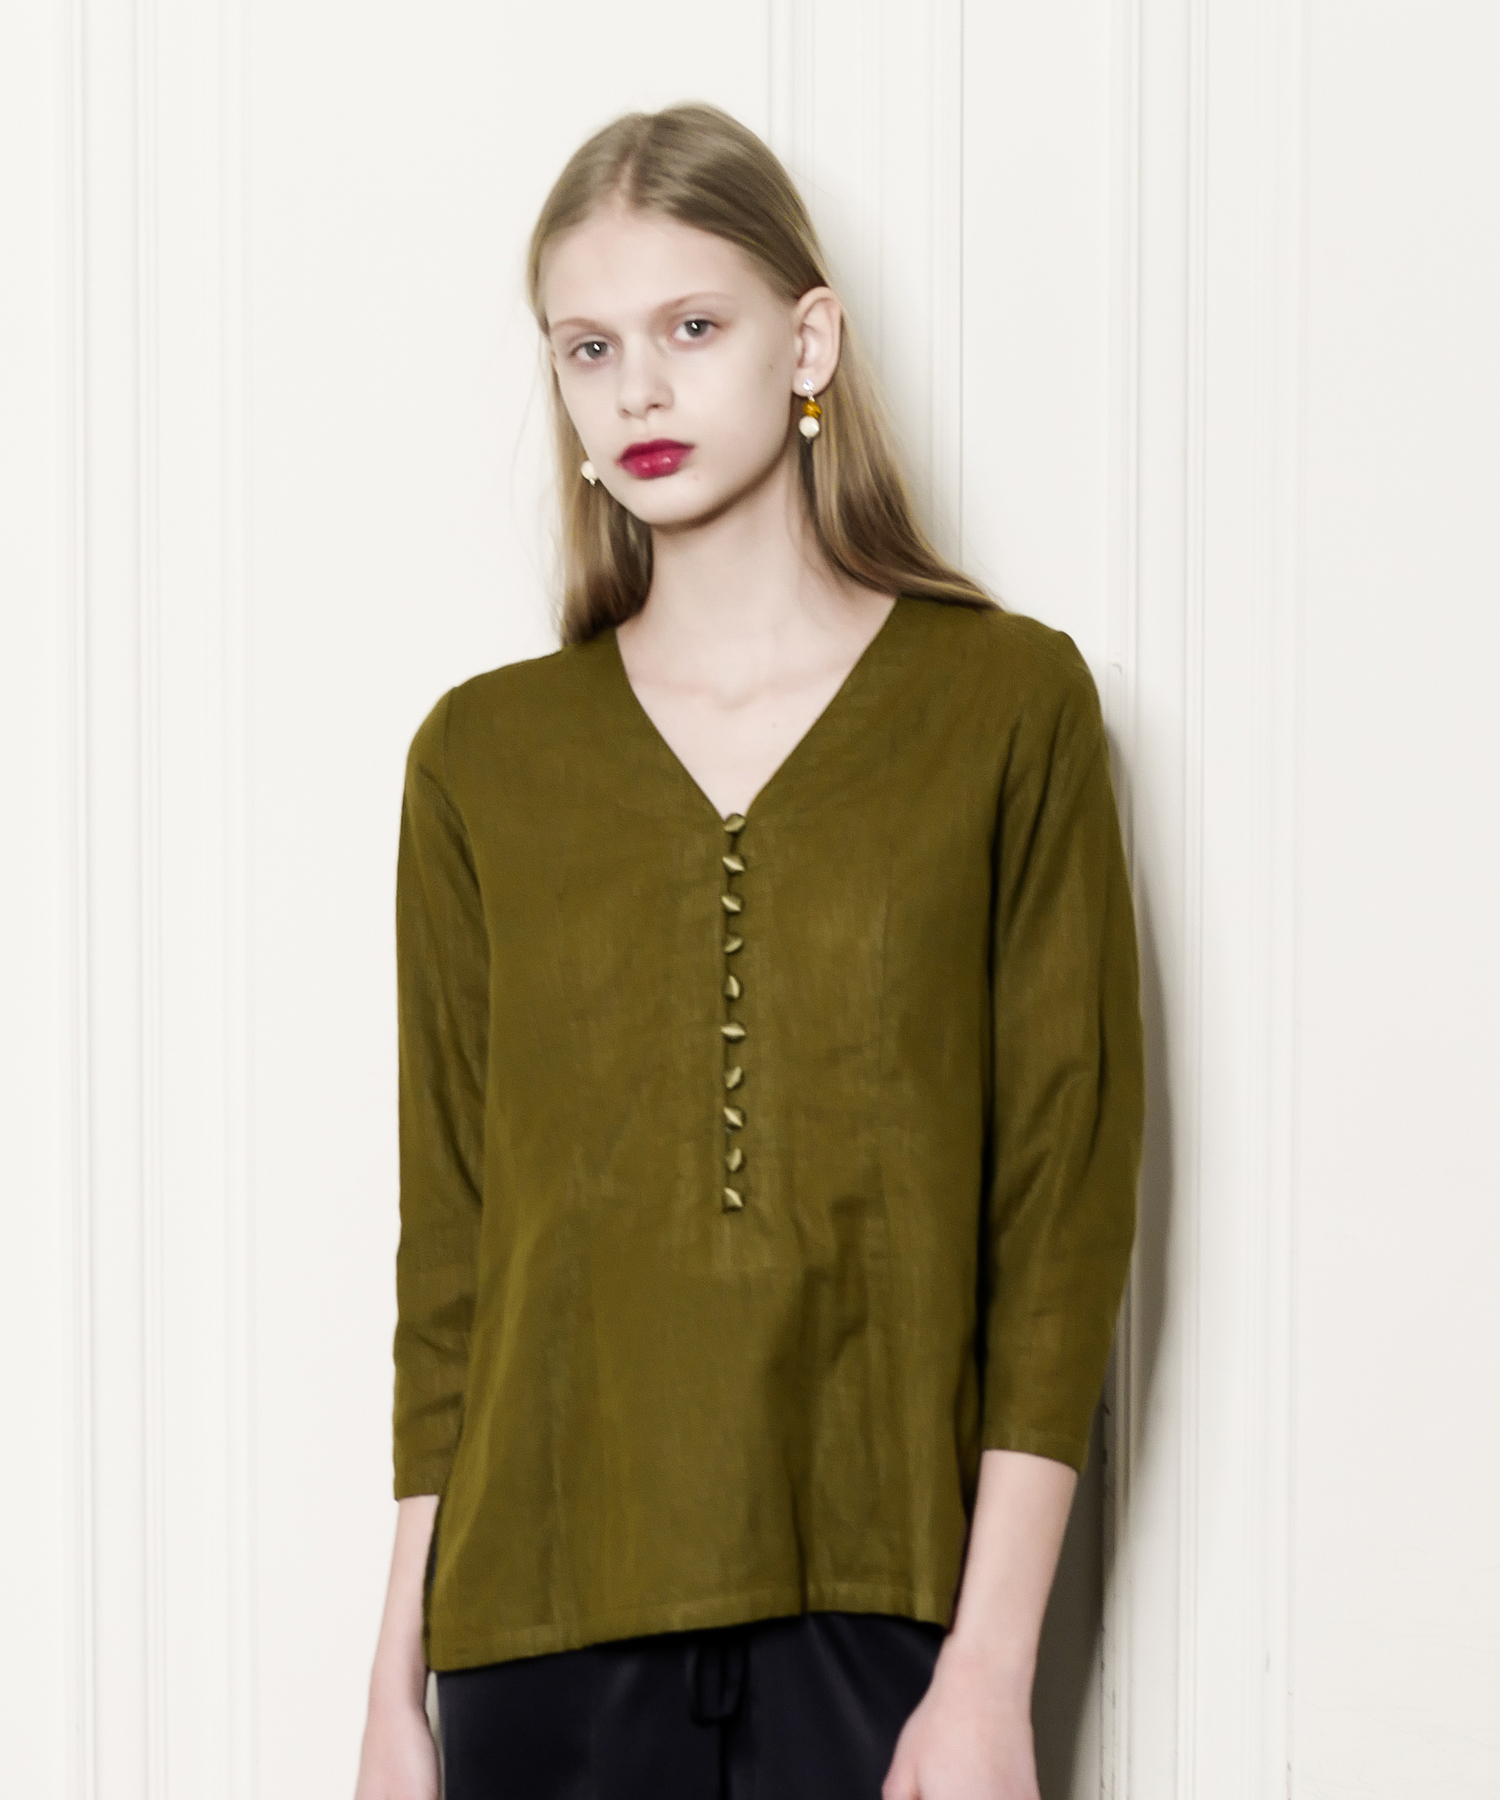 df17SM-02 GAUZE V NECK TOPS (khaki)